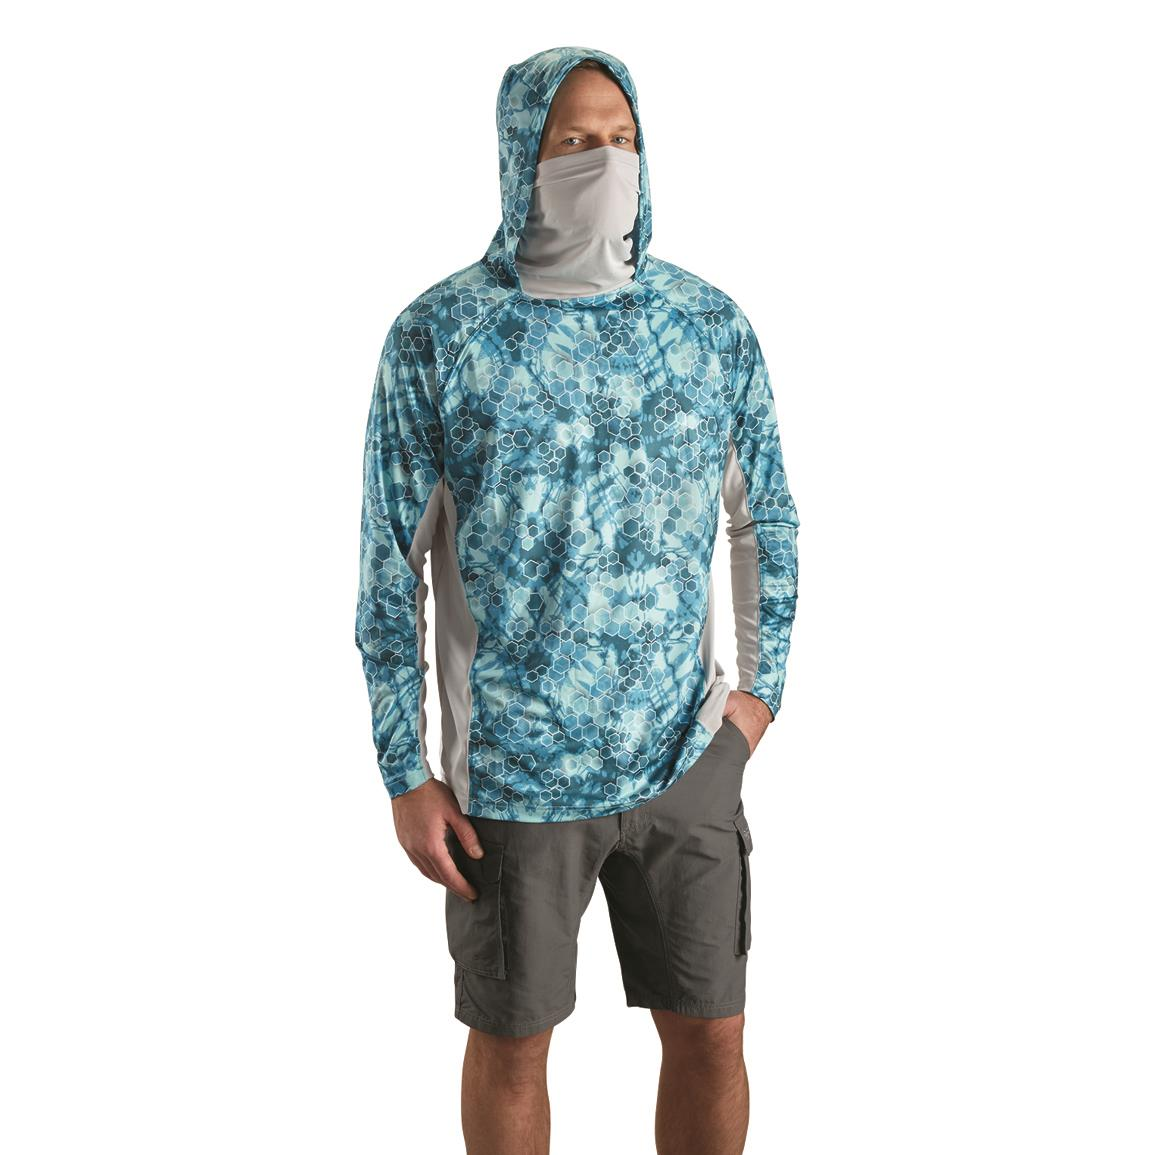 Neck gaitor offers added sun protection for face and neck, Bright Teal Print